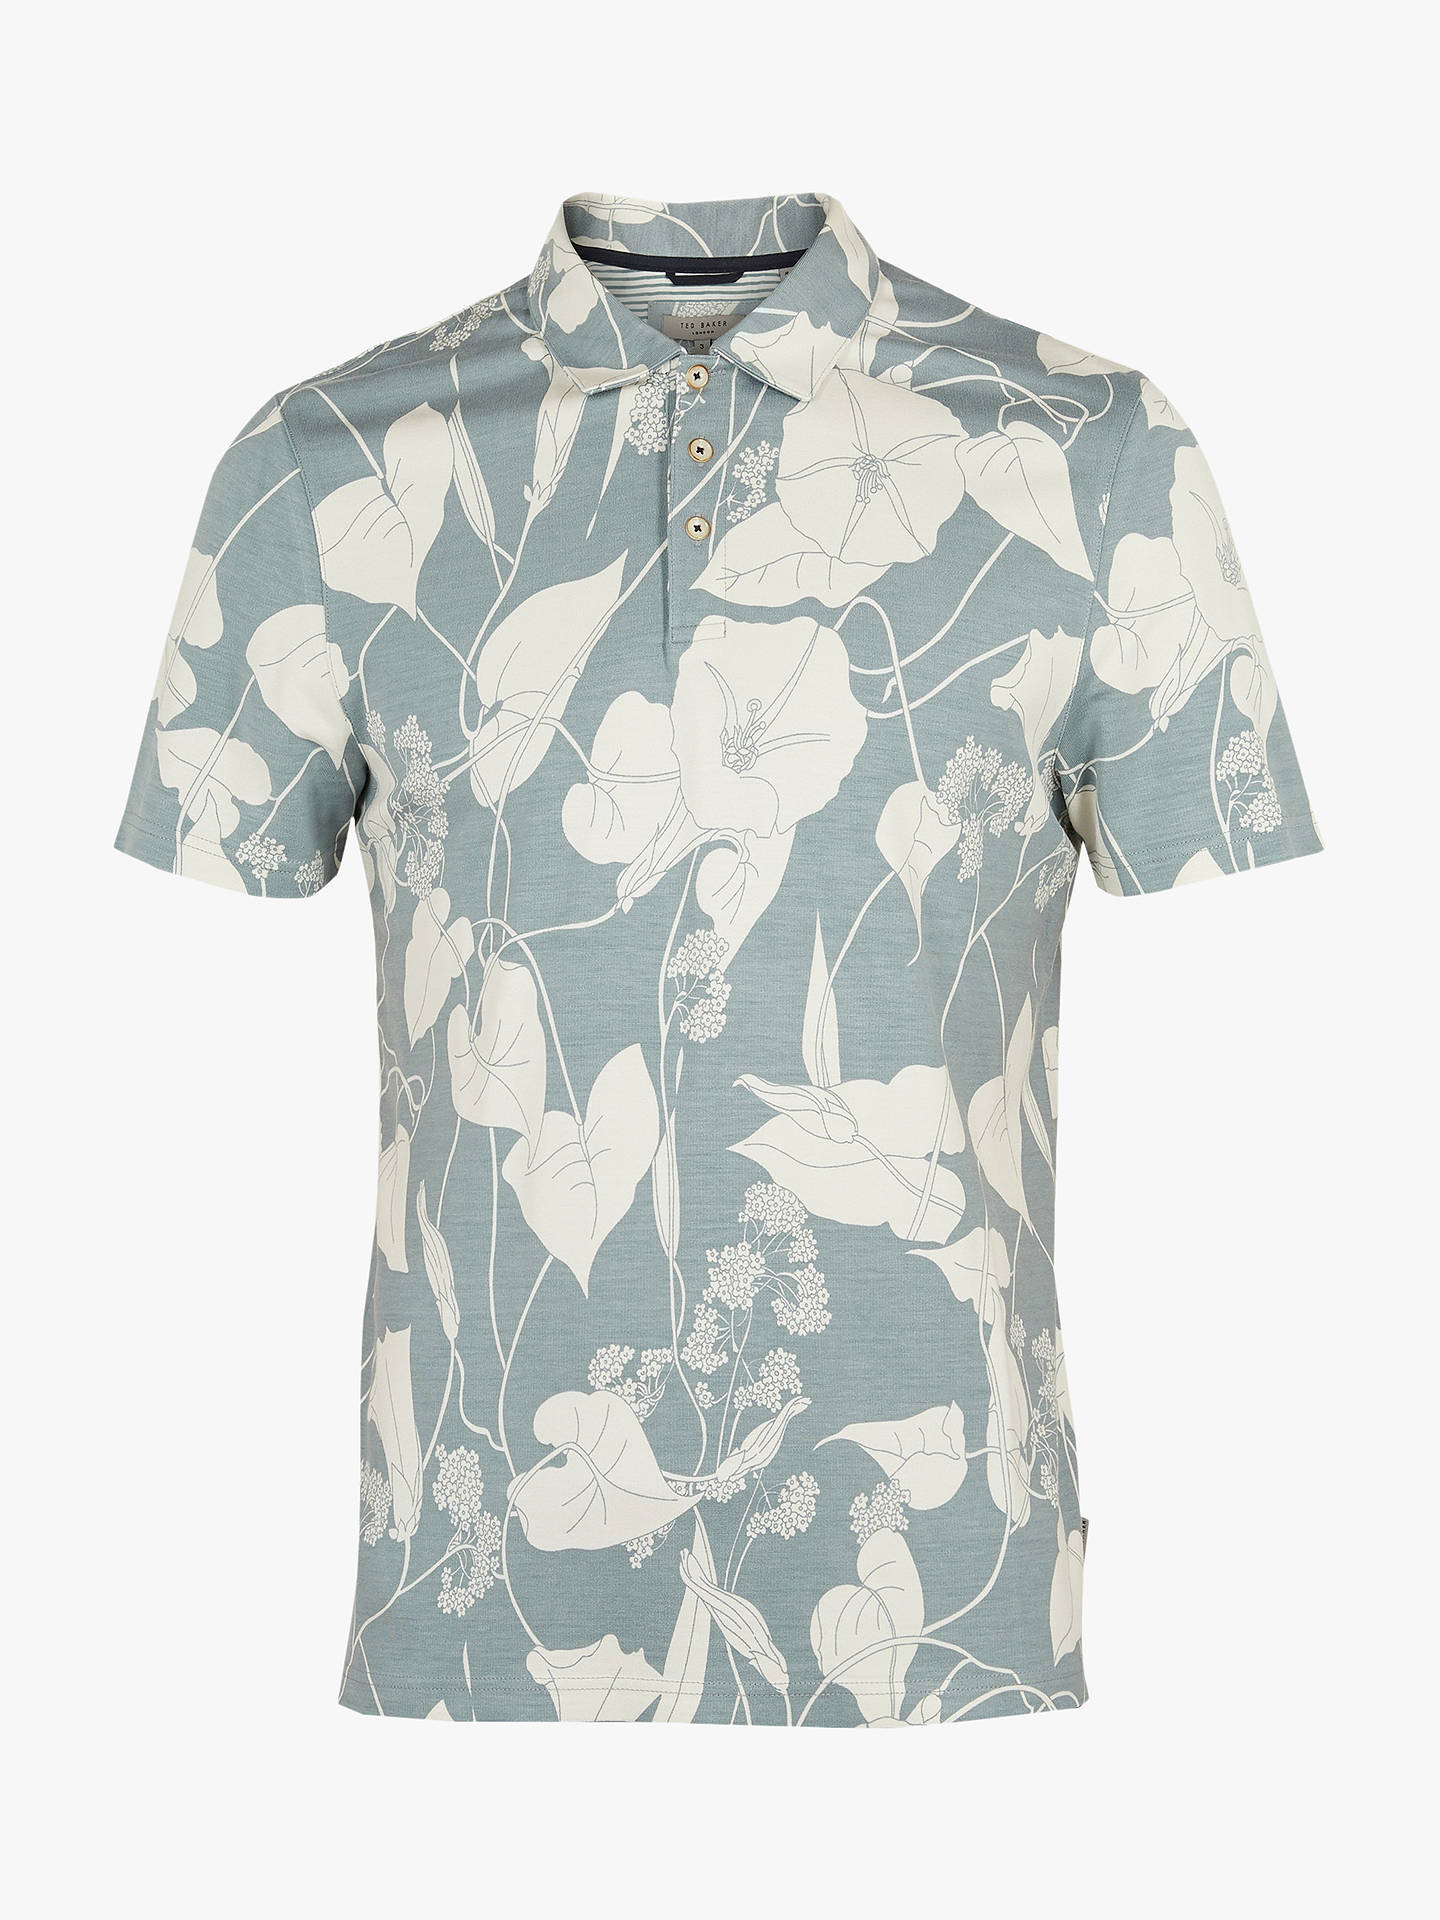 daf1f3179 ... Buy Ted Baker Willow Floral Print Polo Shirt, Light Blue, S Online at  johnlewis